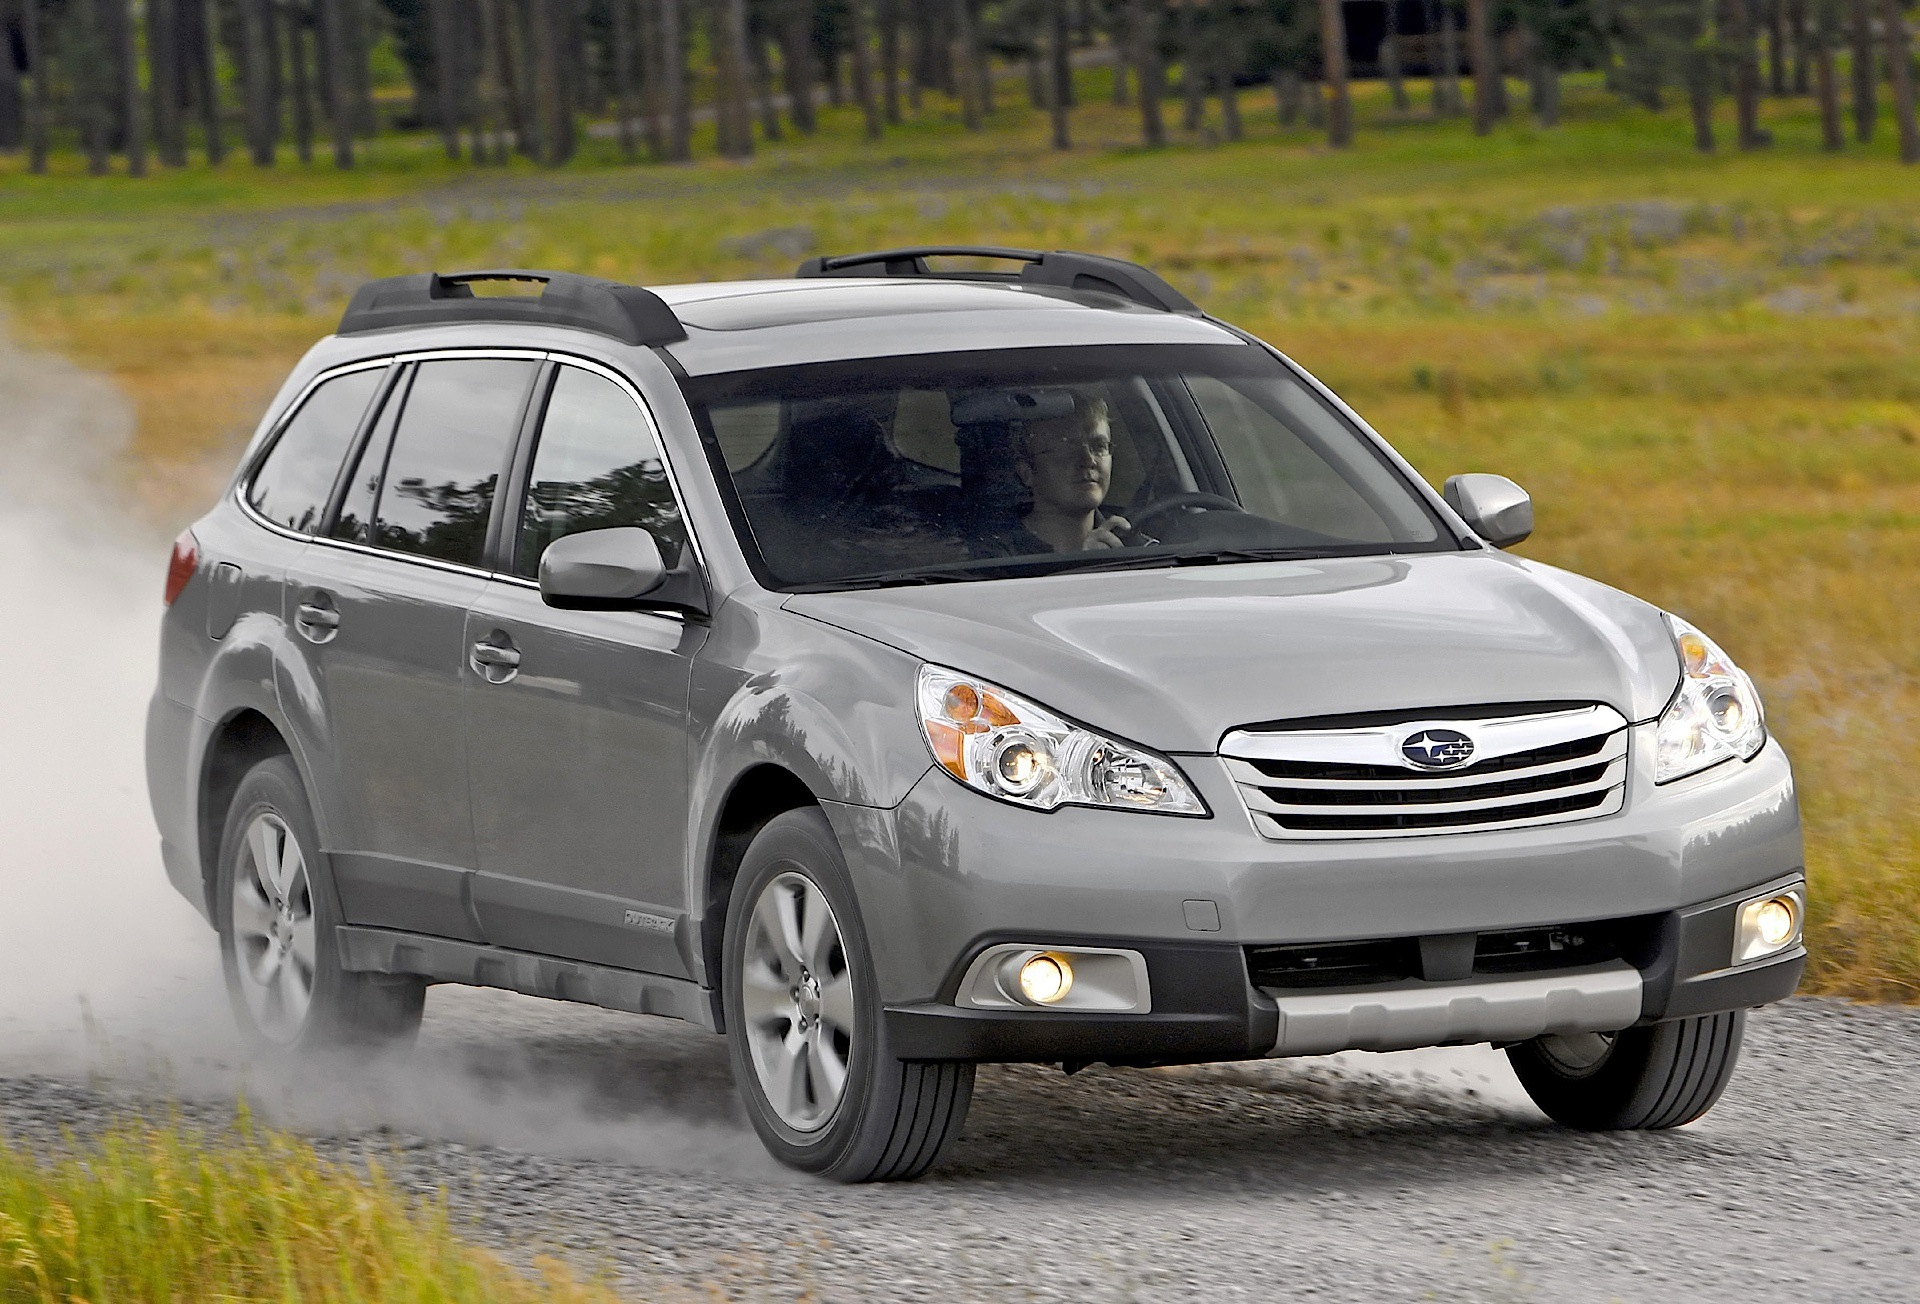 2009 Subaru Outback Start Up, Engine, and In Depth Tour ... |2009 Subaru Outback